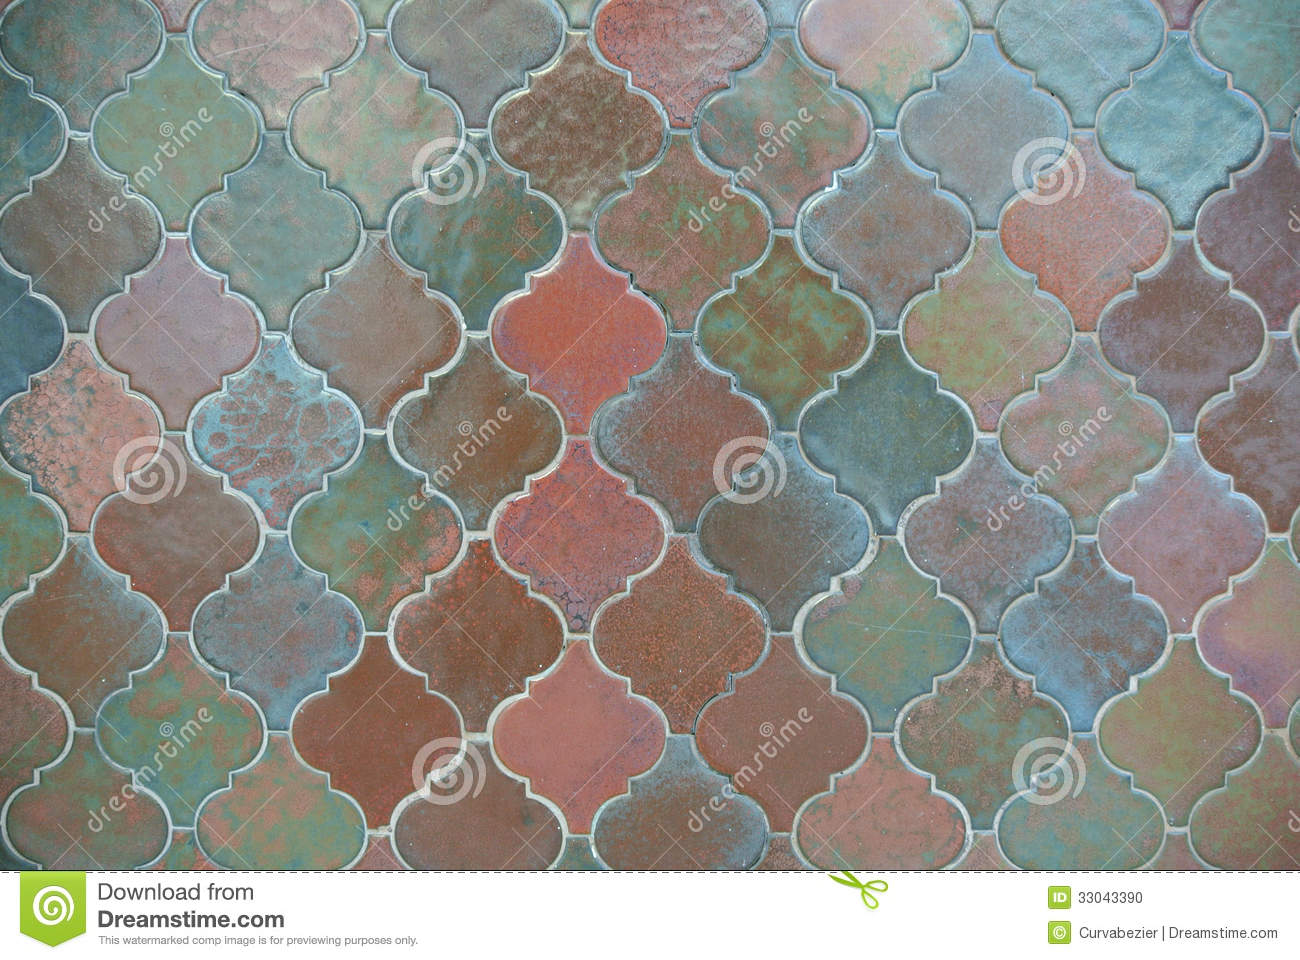 Fancy tile design texture stock photo. Image of tile - 33043390